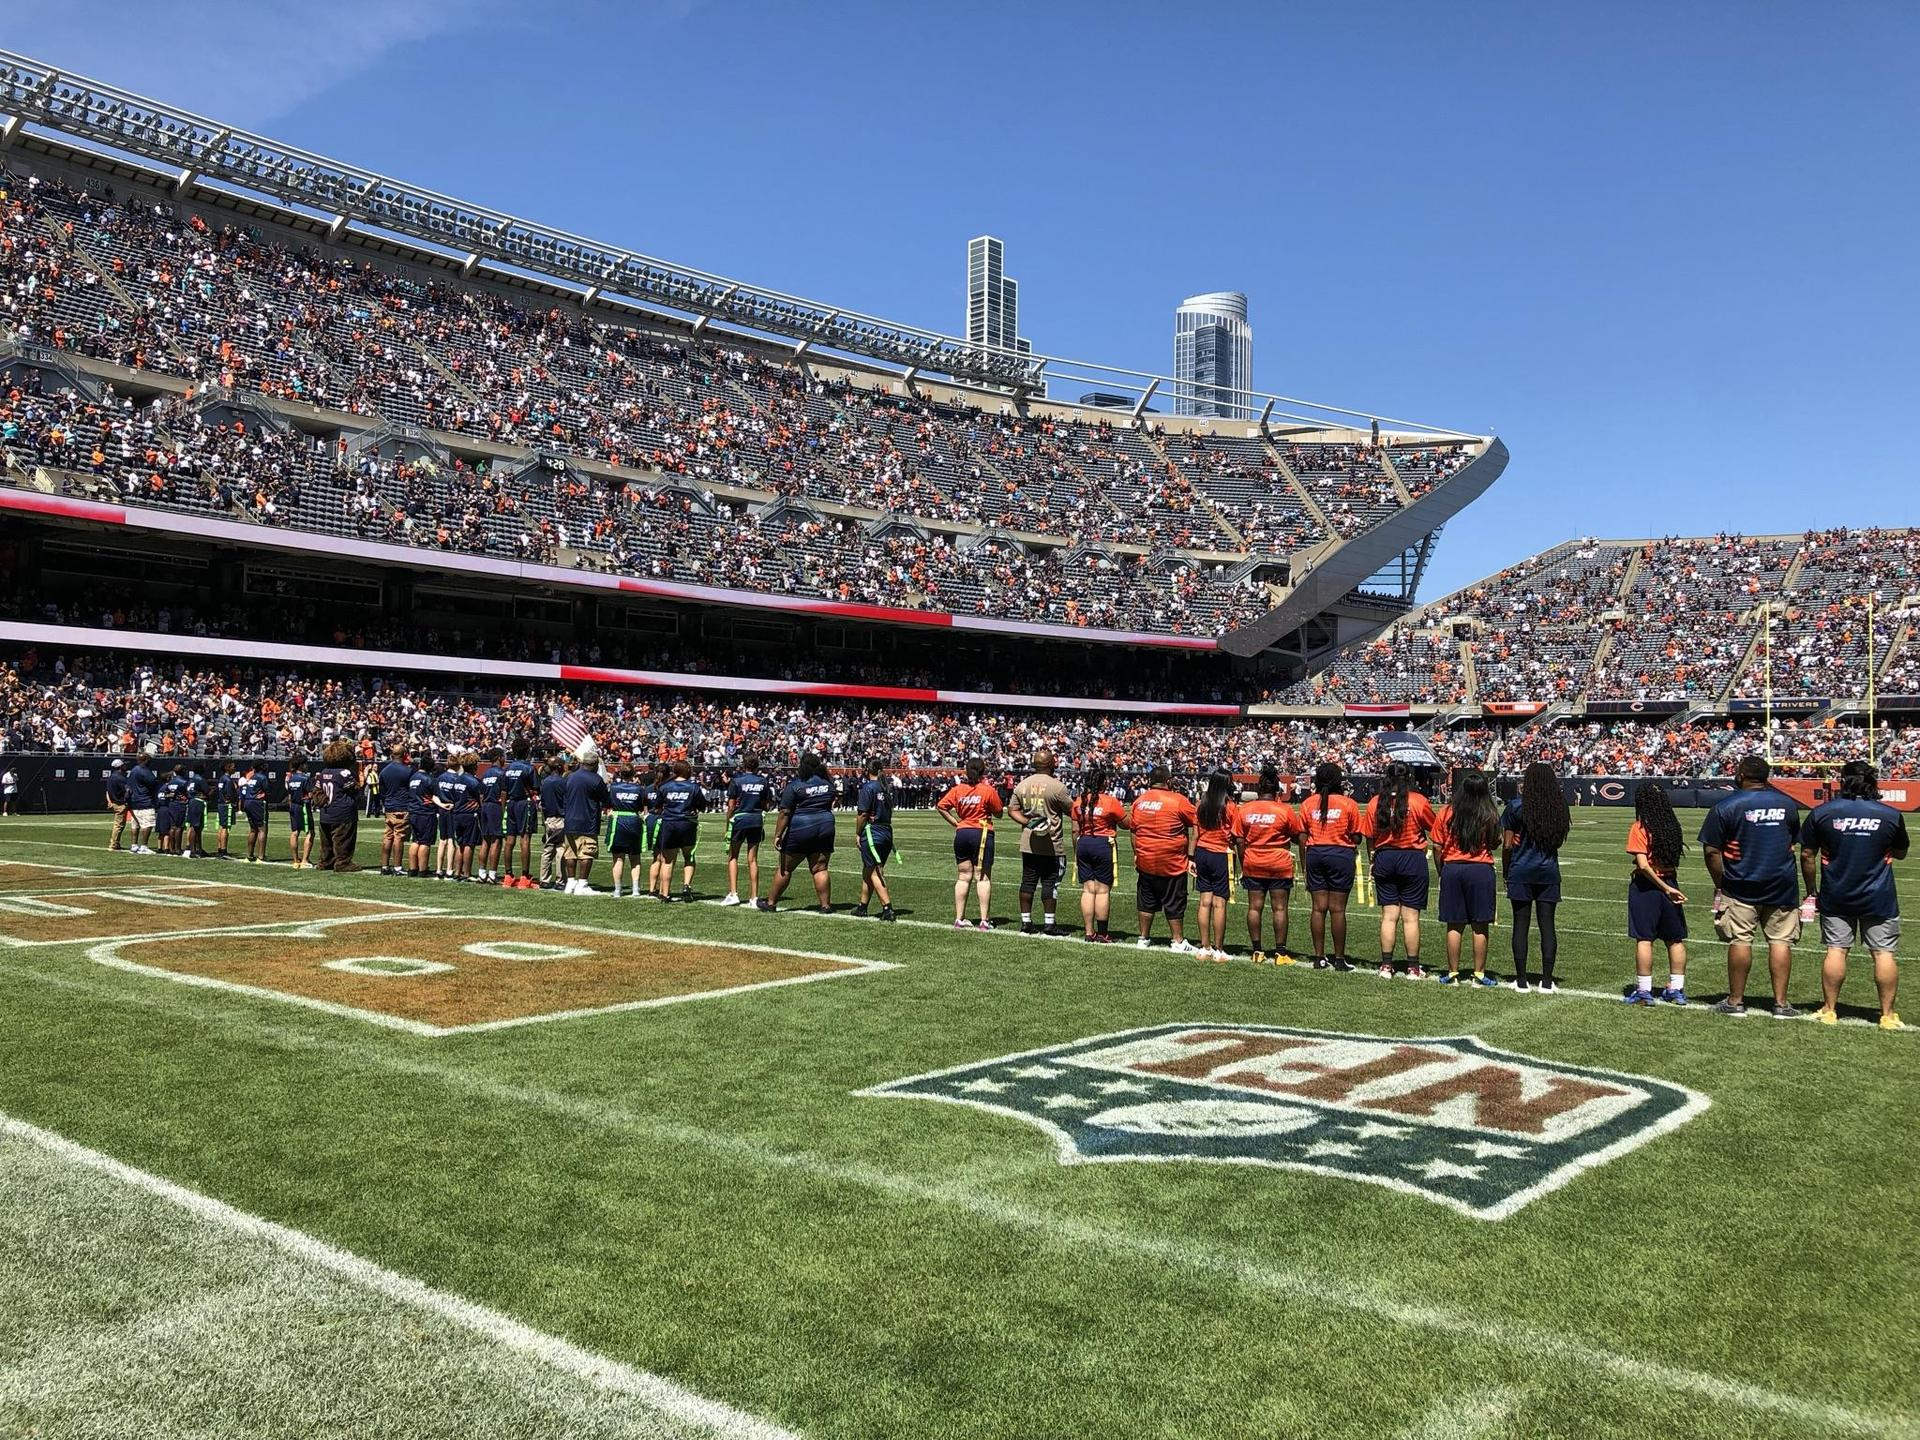 The Prosser Flag Football team plays at Soldier Field!